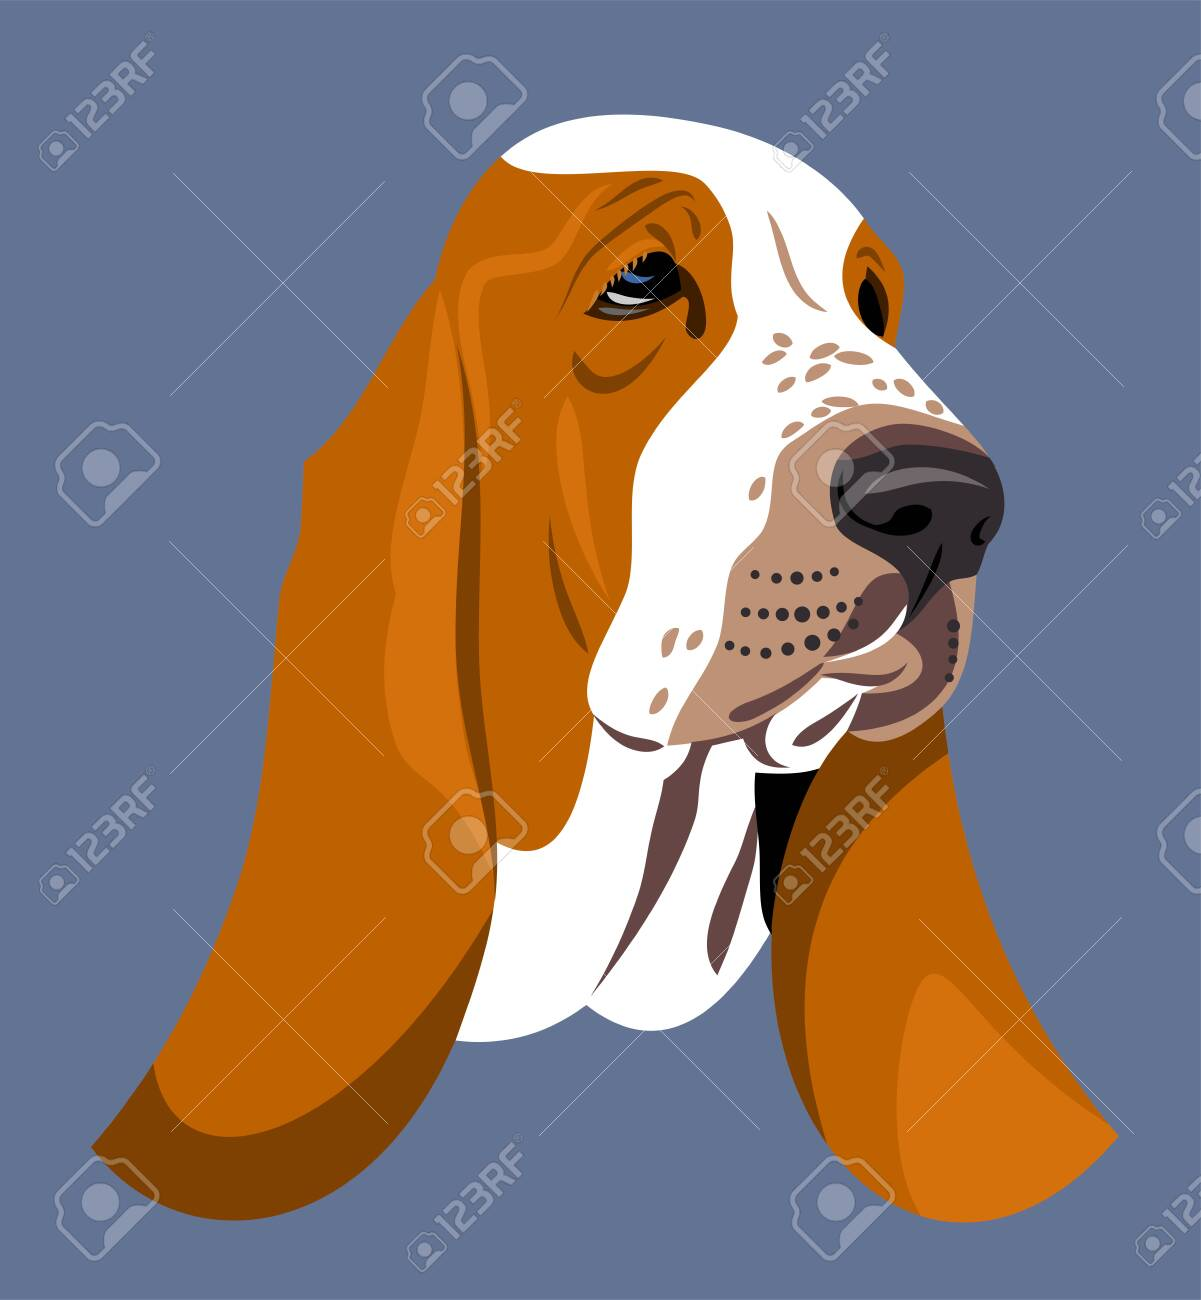 Funny and cute portrait of a dog Basset Hound - 130864050